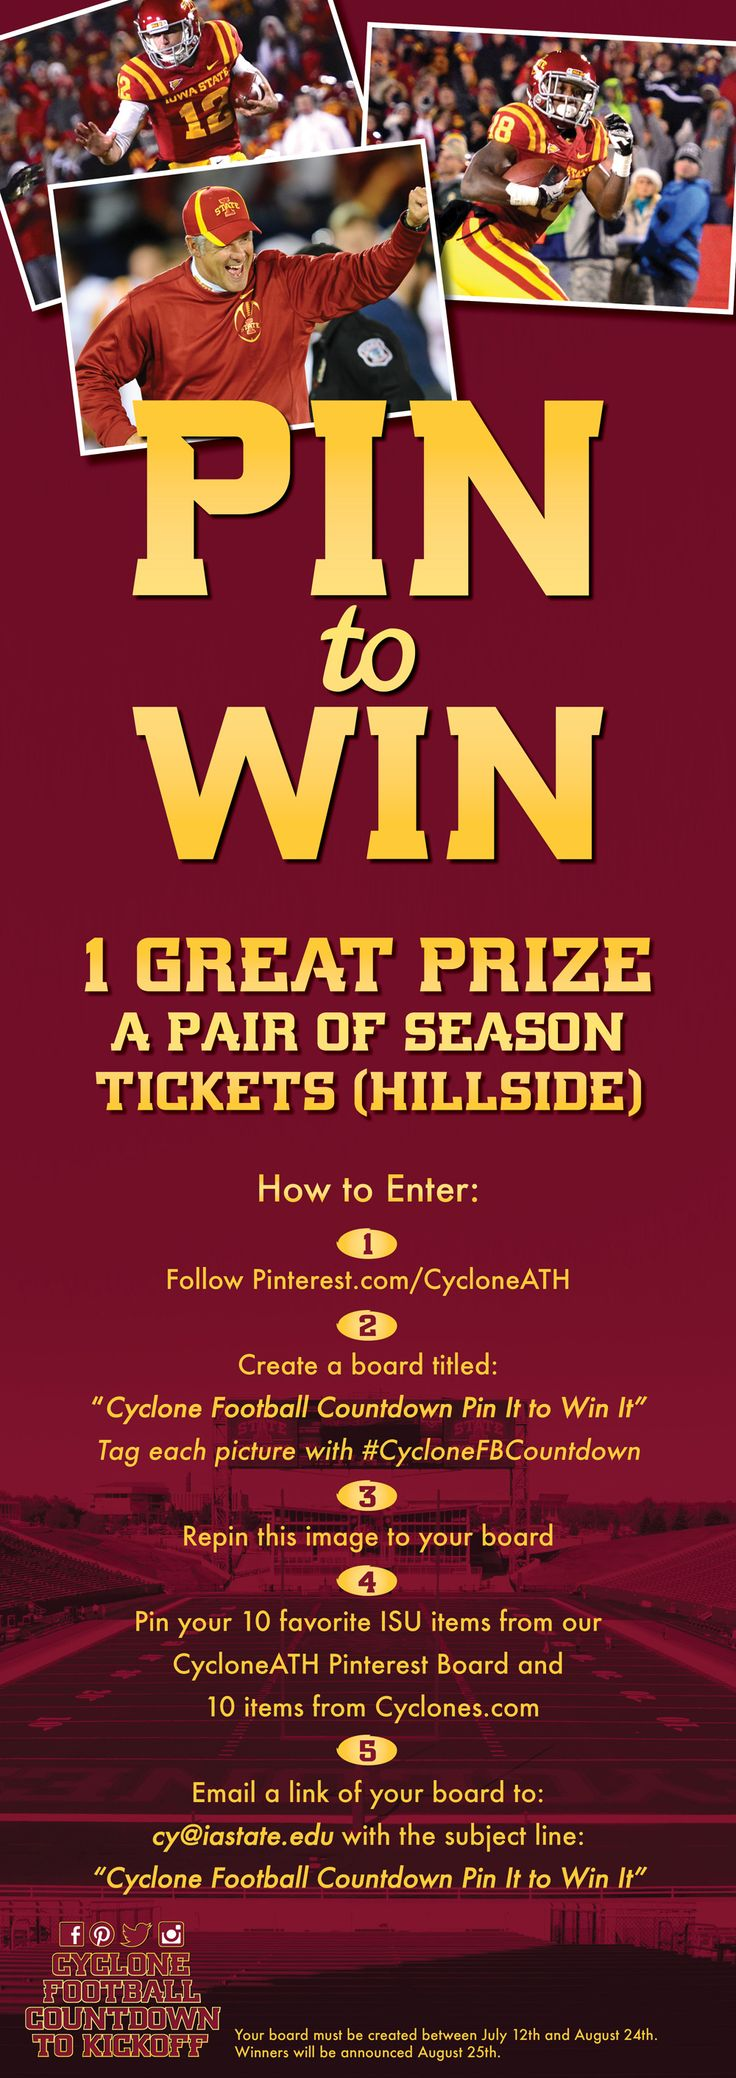 Enter our Pin to Win Contest for a chance to win hillside season tickets!